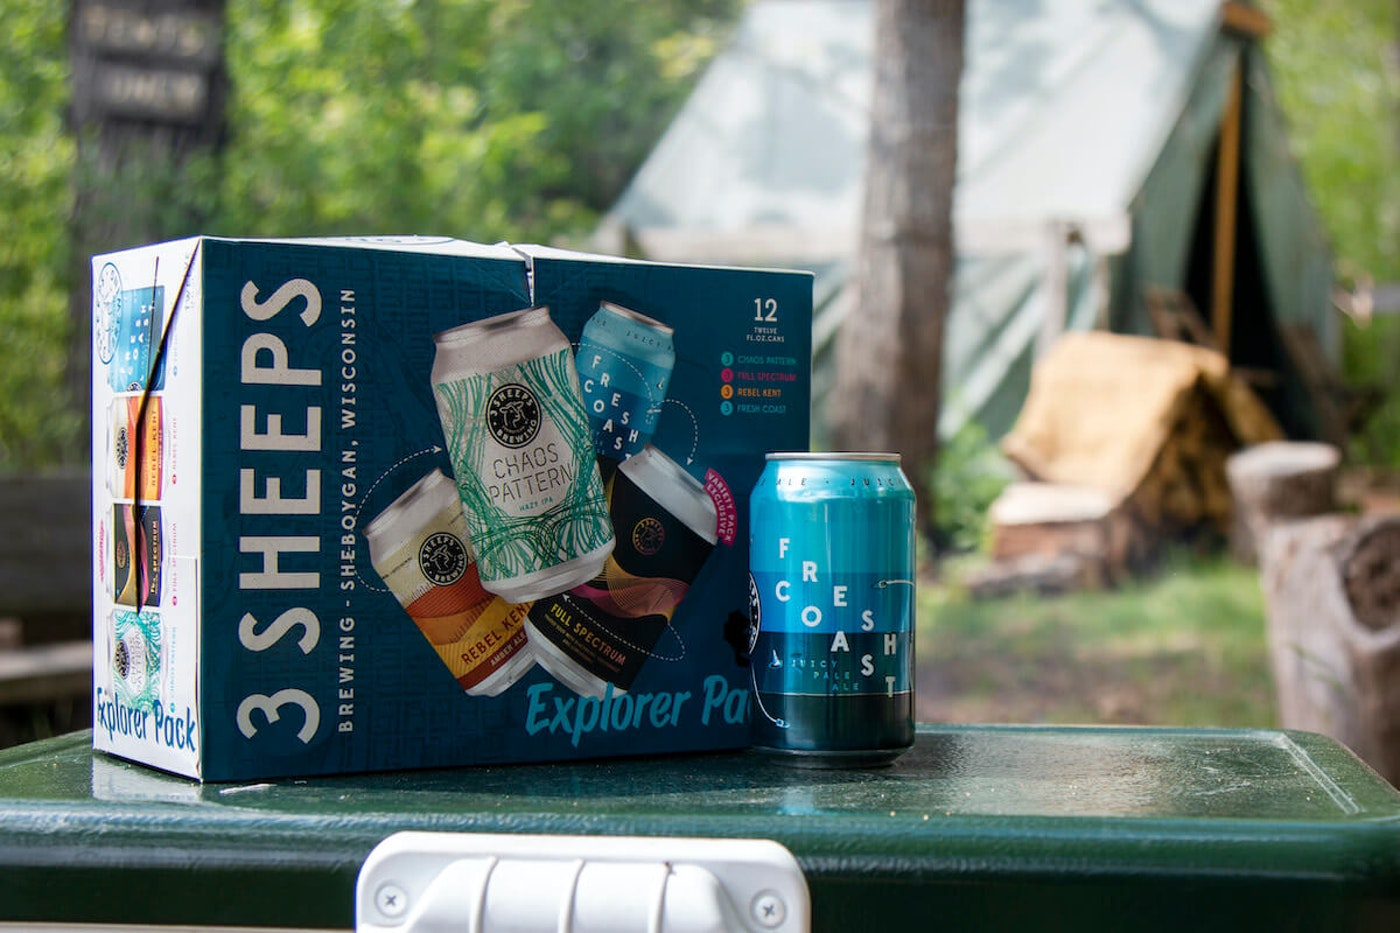 """3 Sheeps Brewing is selling a summer """"Explorer Pack"""" with four different summer beers. (Photo courtesy of 3 Sheeps Brewing)"""